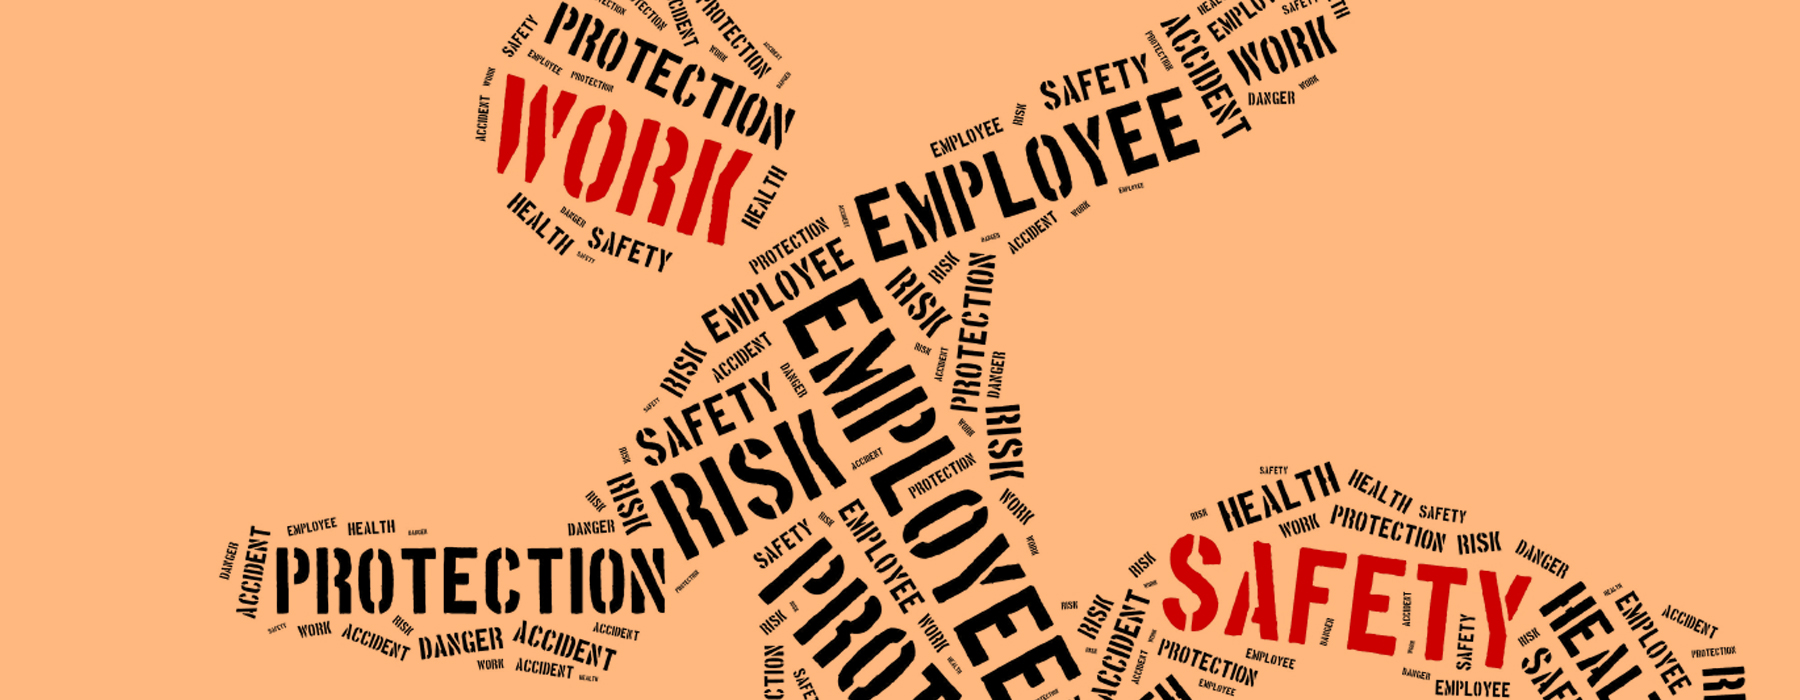 Four Essential Steps to Implement Basic Safety Management